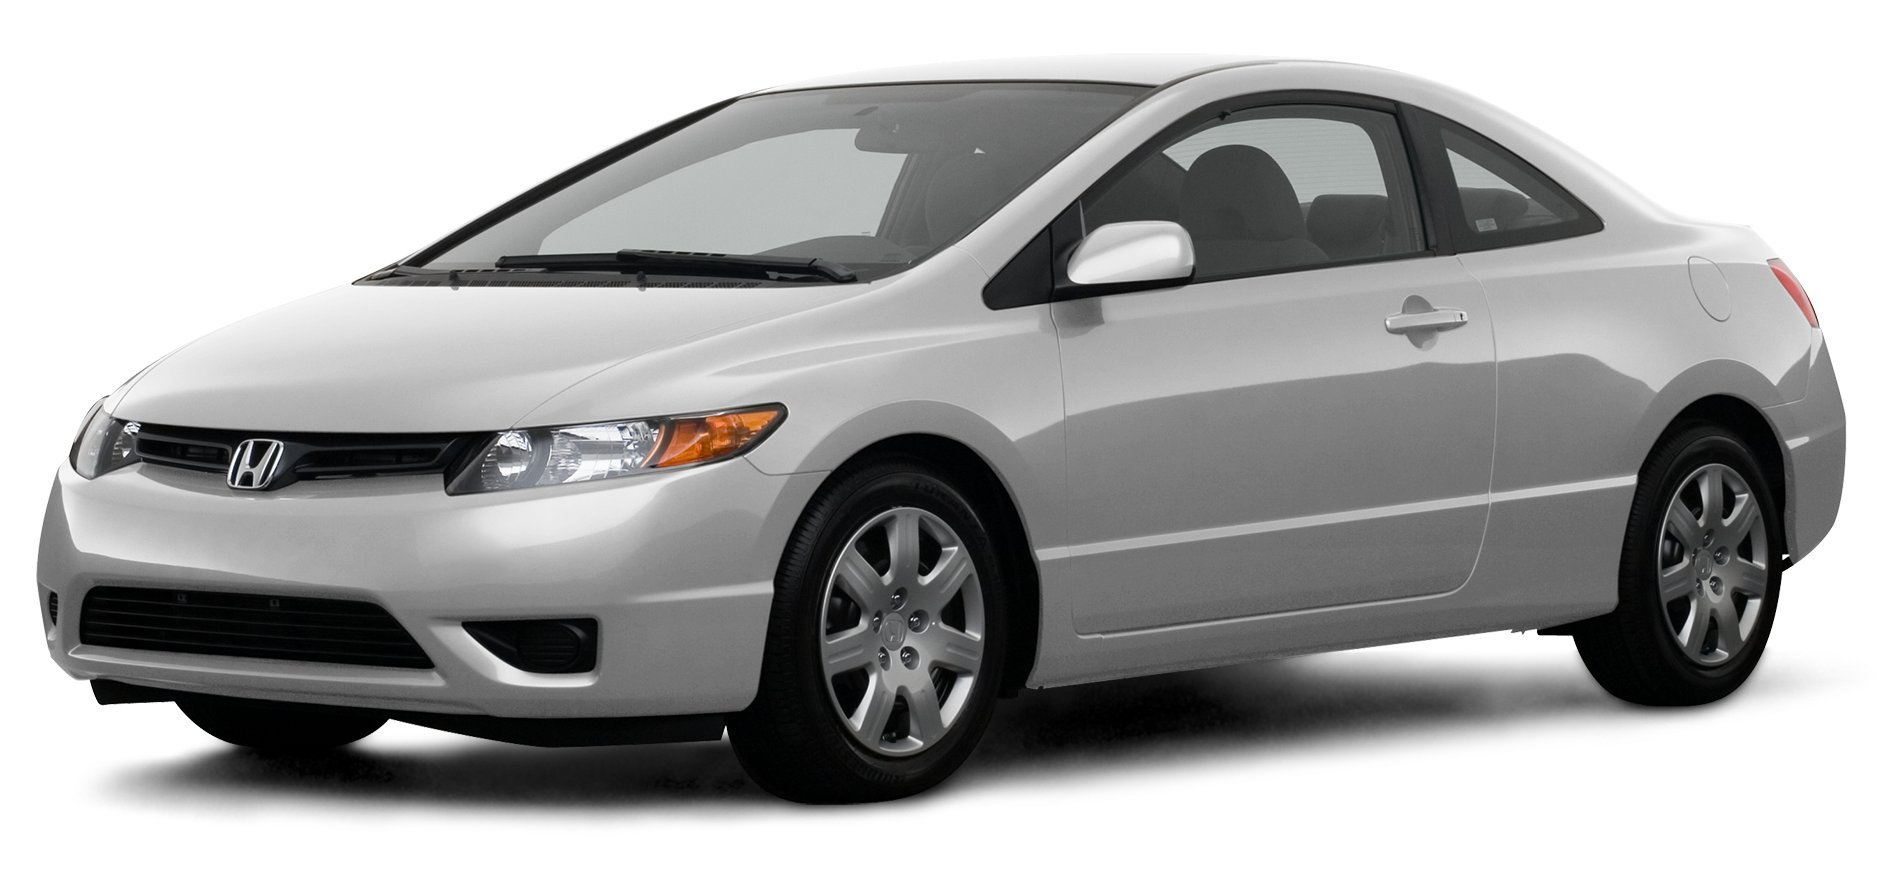 2004 saturn ion owners manual download